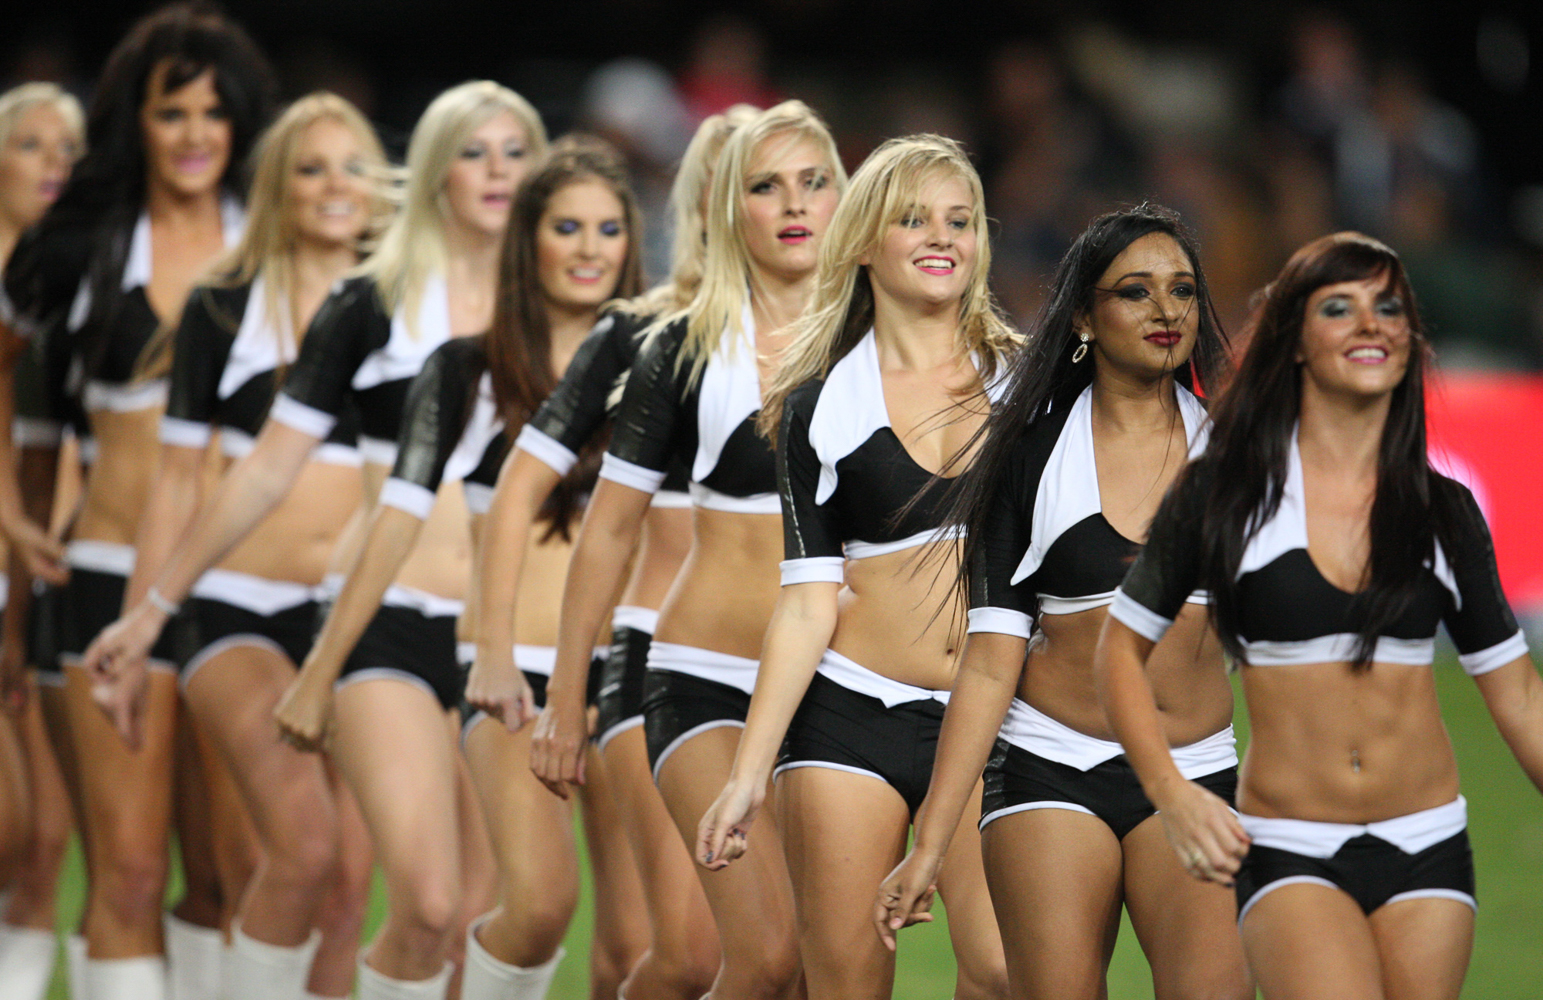 Gallery. Super Rugby Cheerleaders